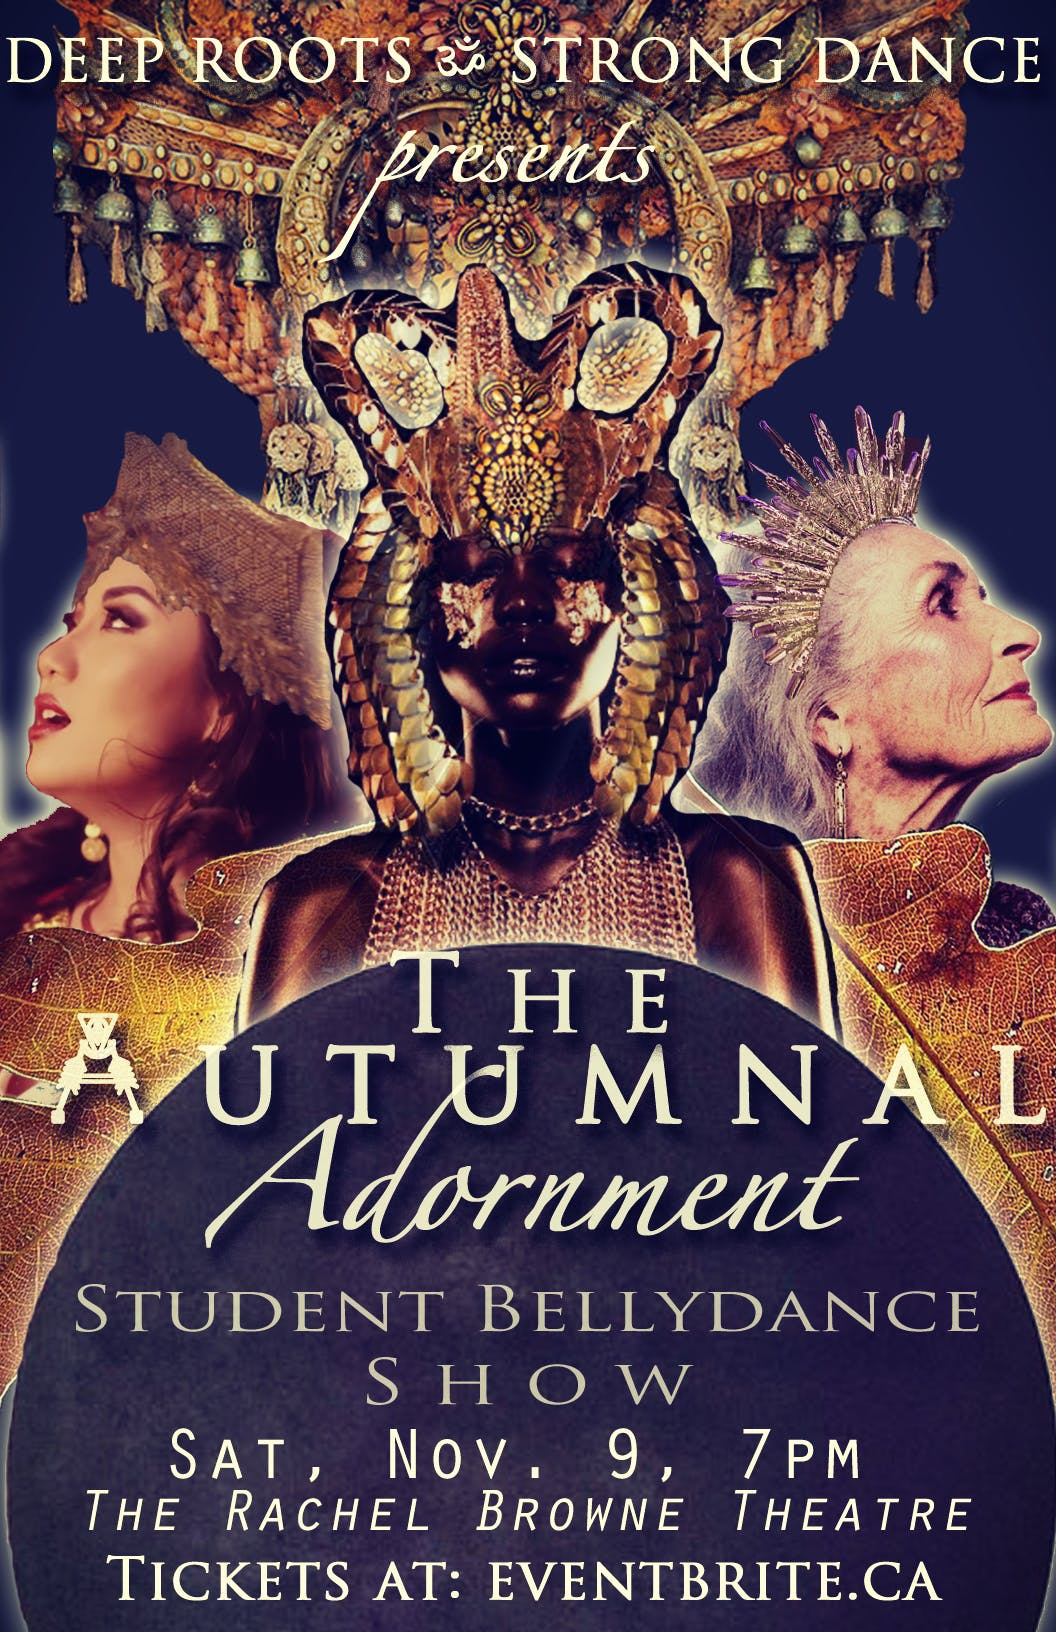 The Autumnal Adornment: Student Bellydance Show